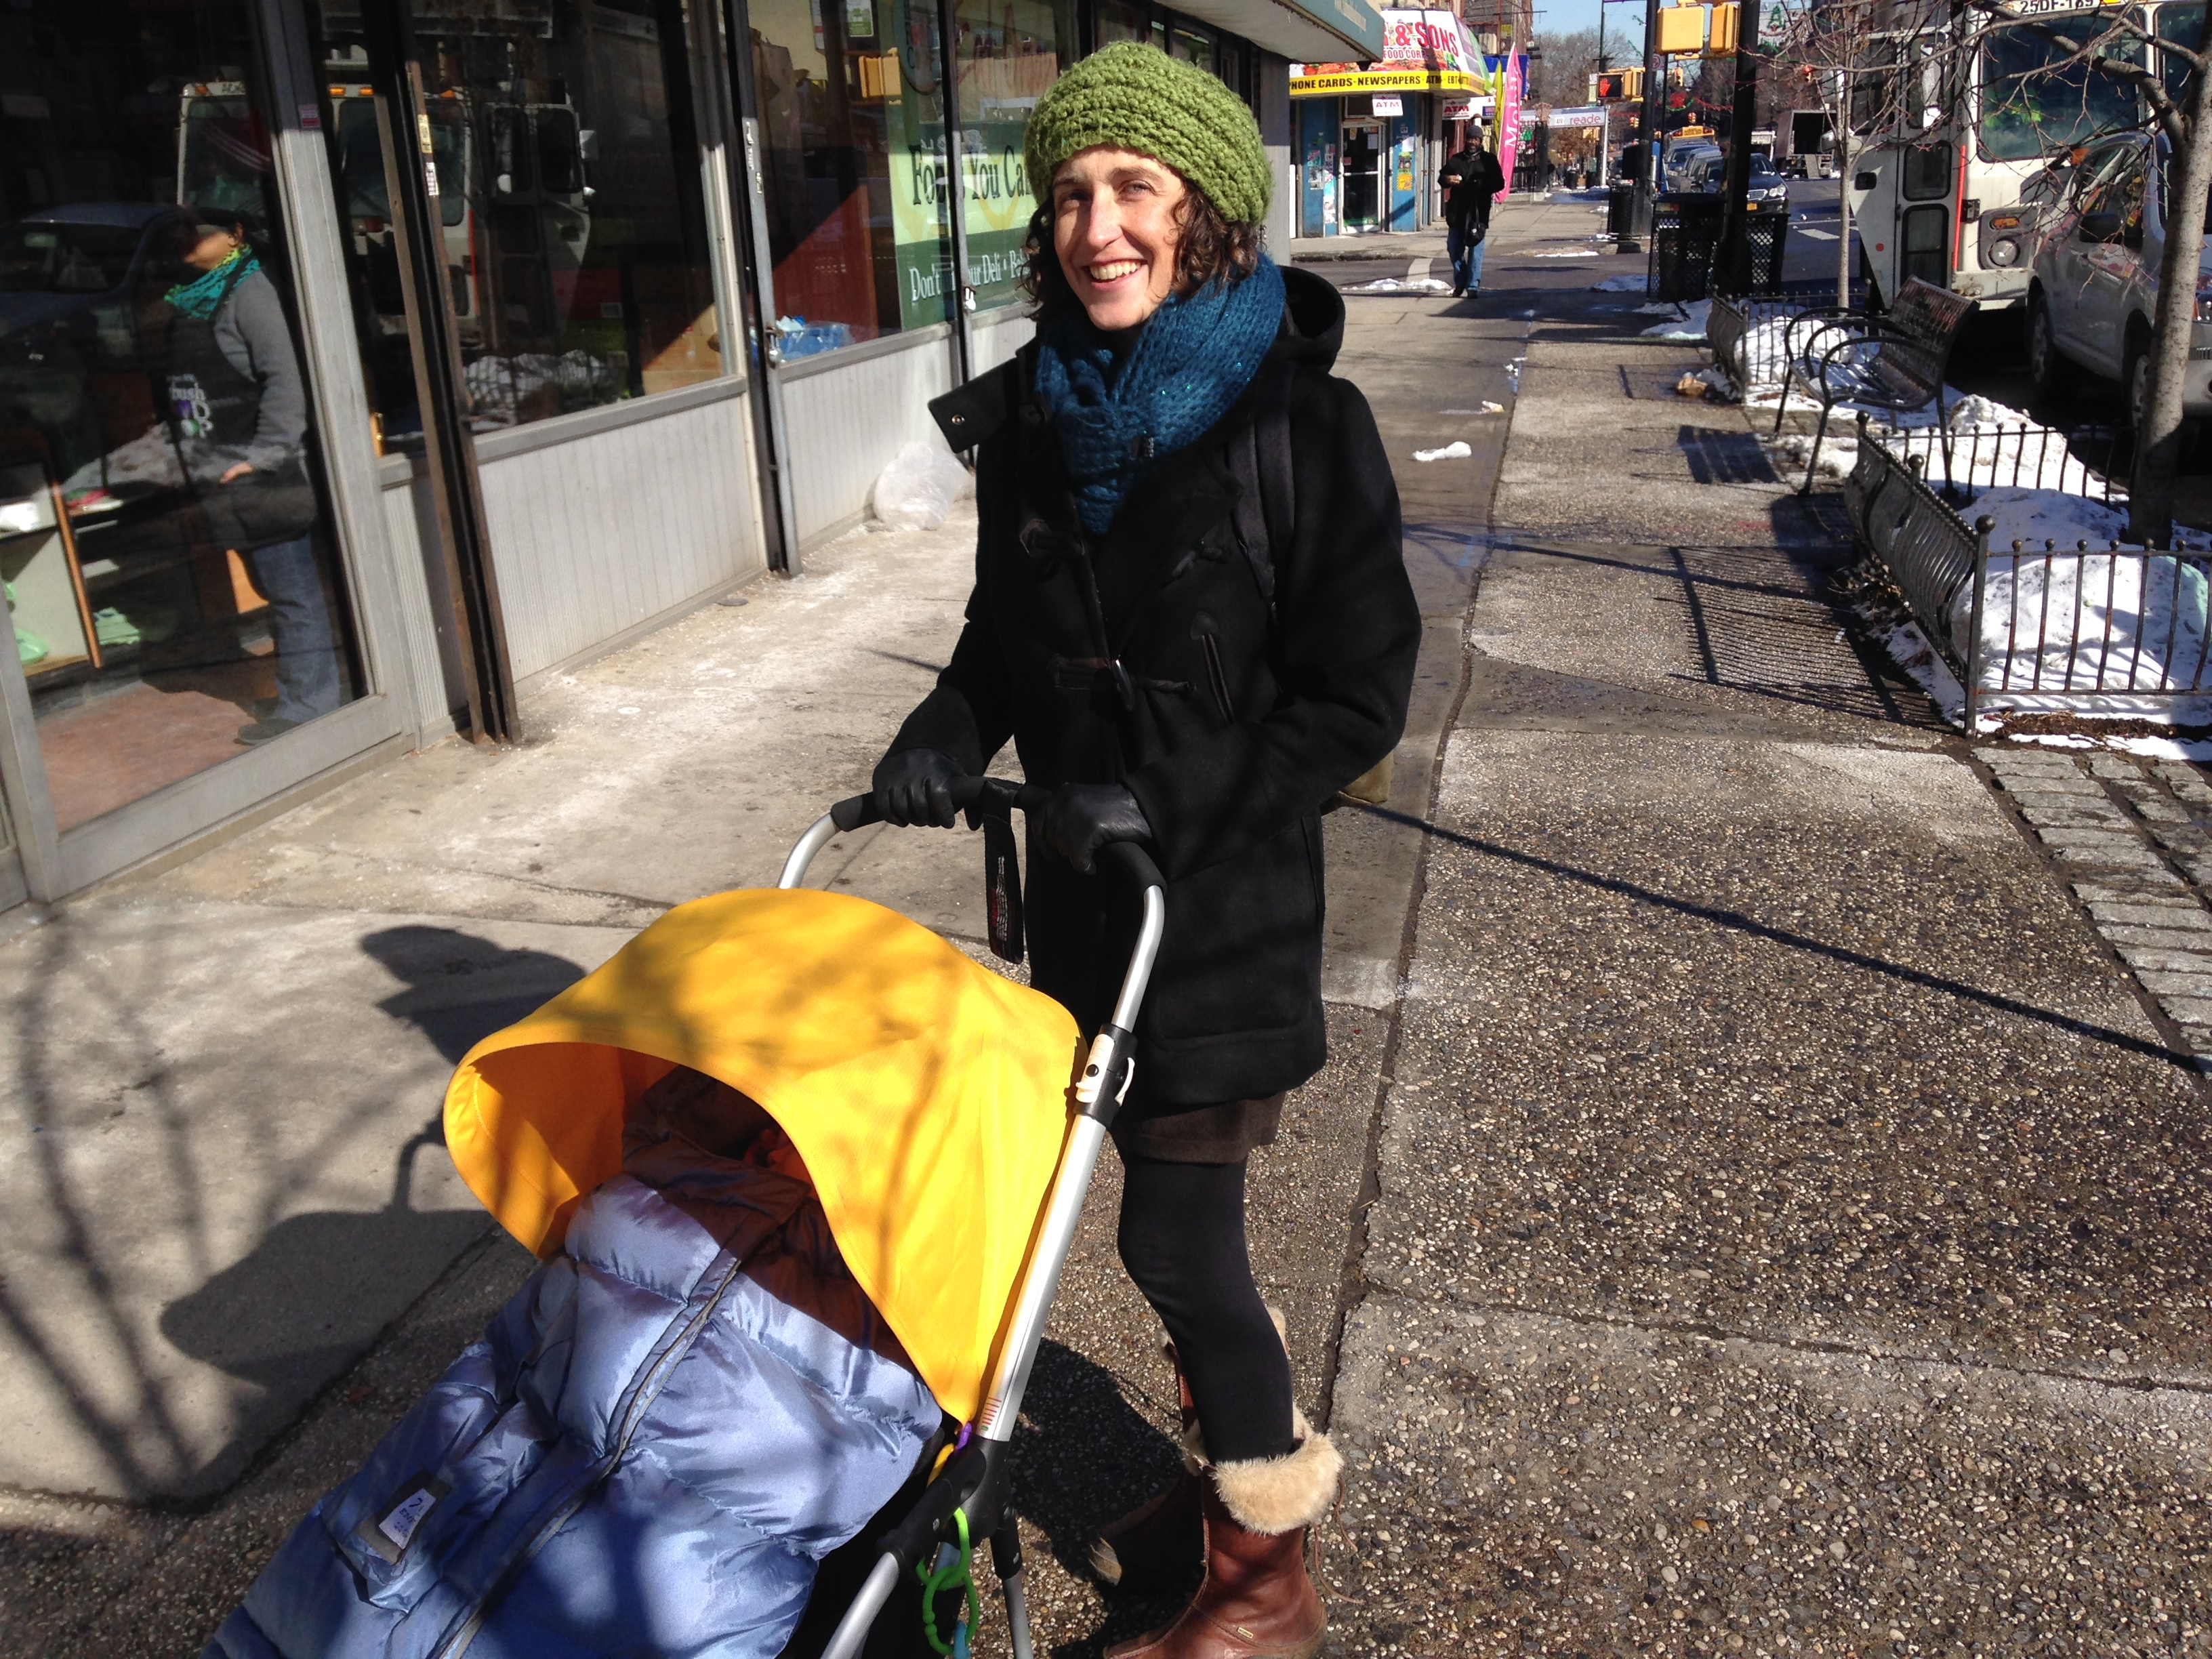 Stacey Greene takes her baby out for a stroll on a freezing day in Ditmas Park.